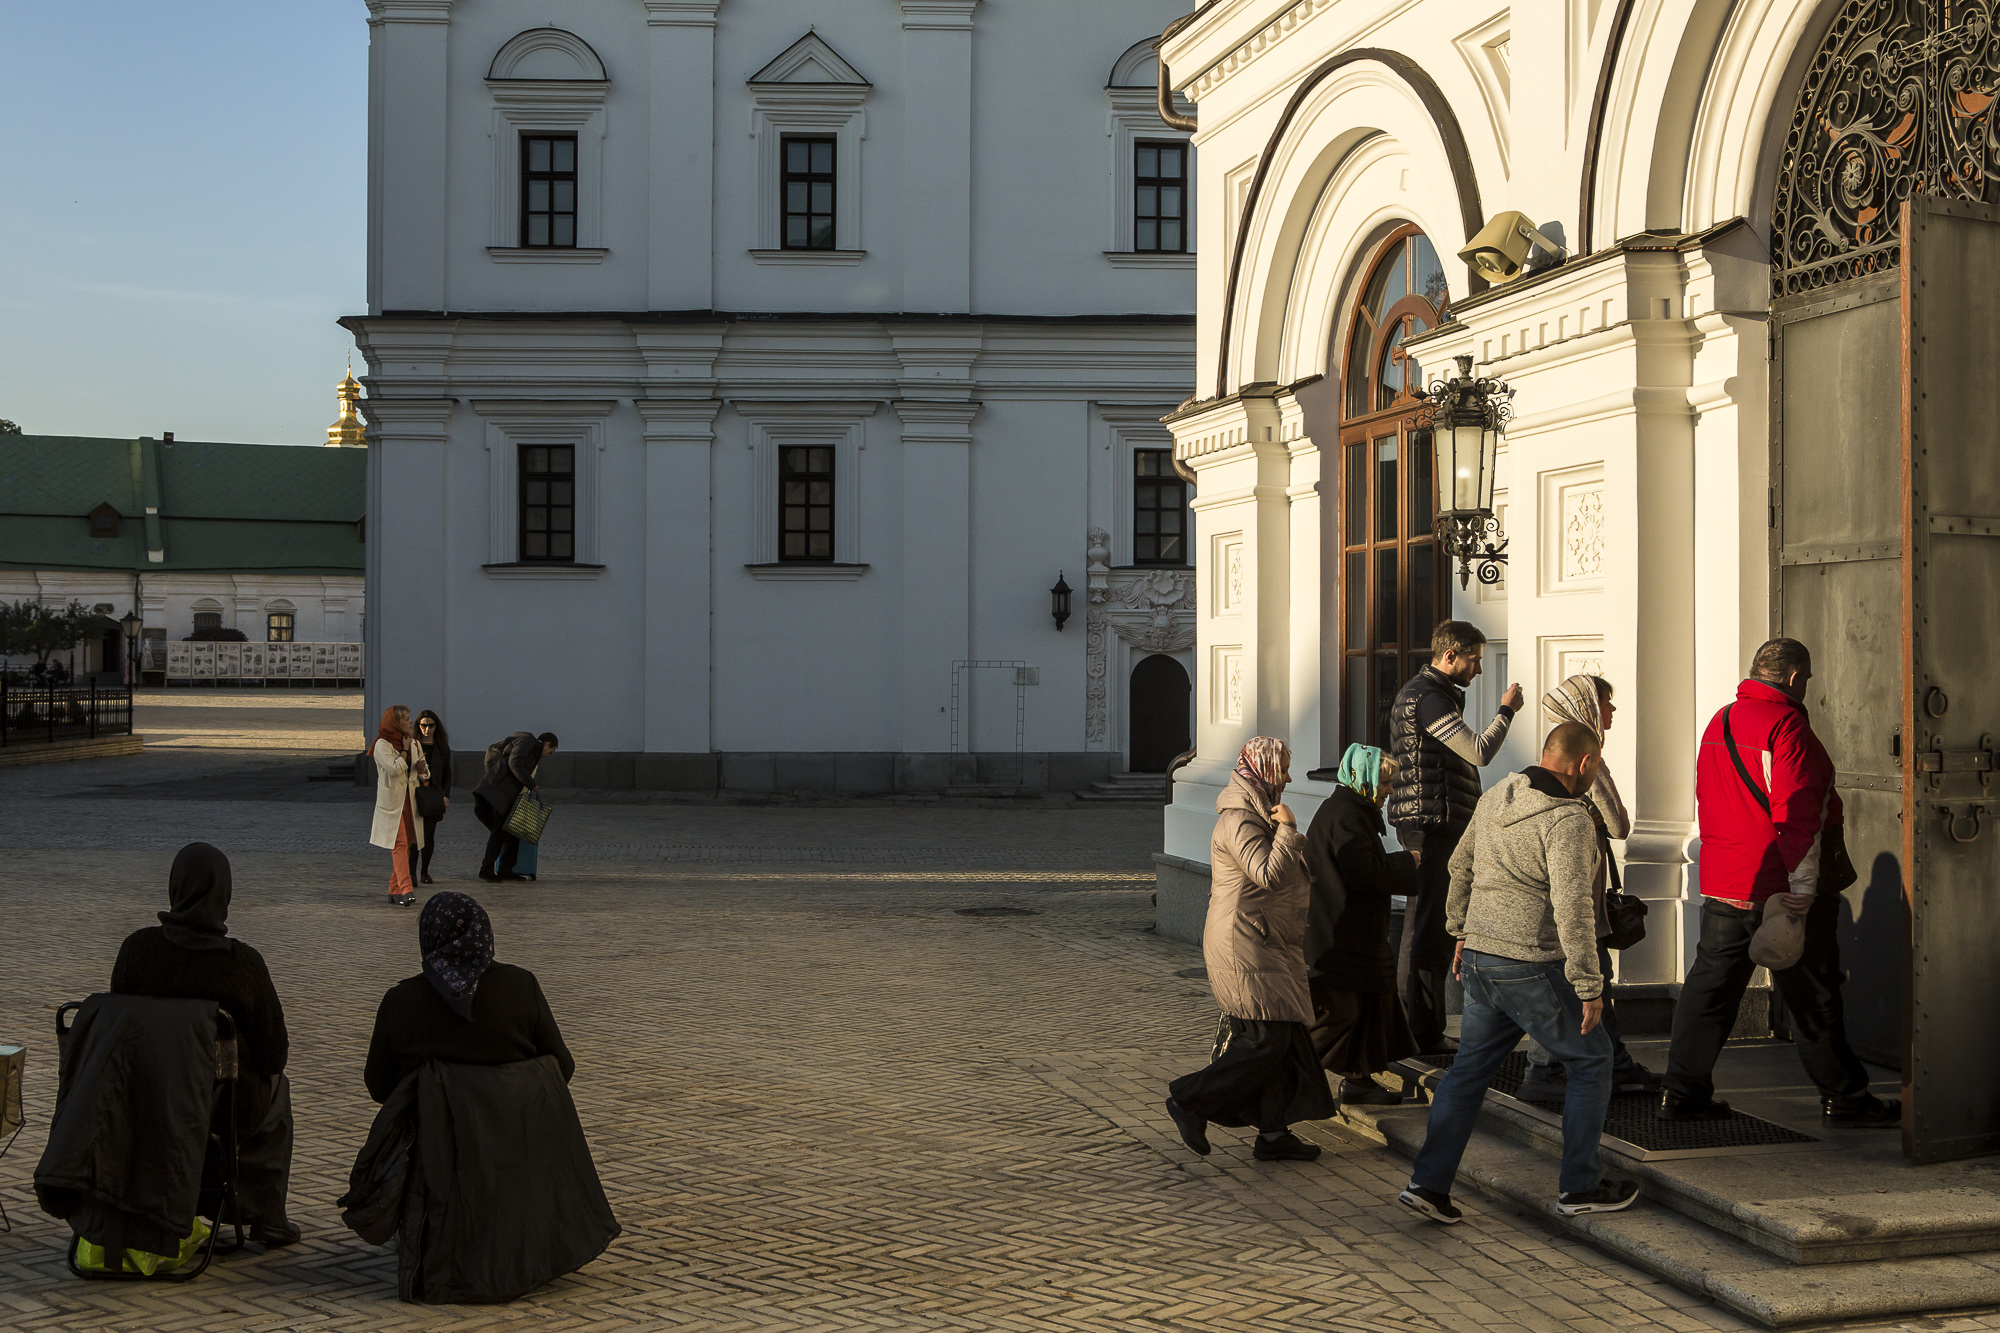 People enter the Refectory Church of Sts. Anthony and Theodosius for the Evening Divine Office at the Kyiv-Pechersk Lavra on Wednesday, October 10, 2018 in Kyiv, Ukraine.